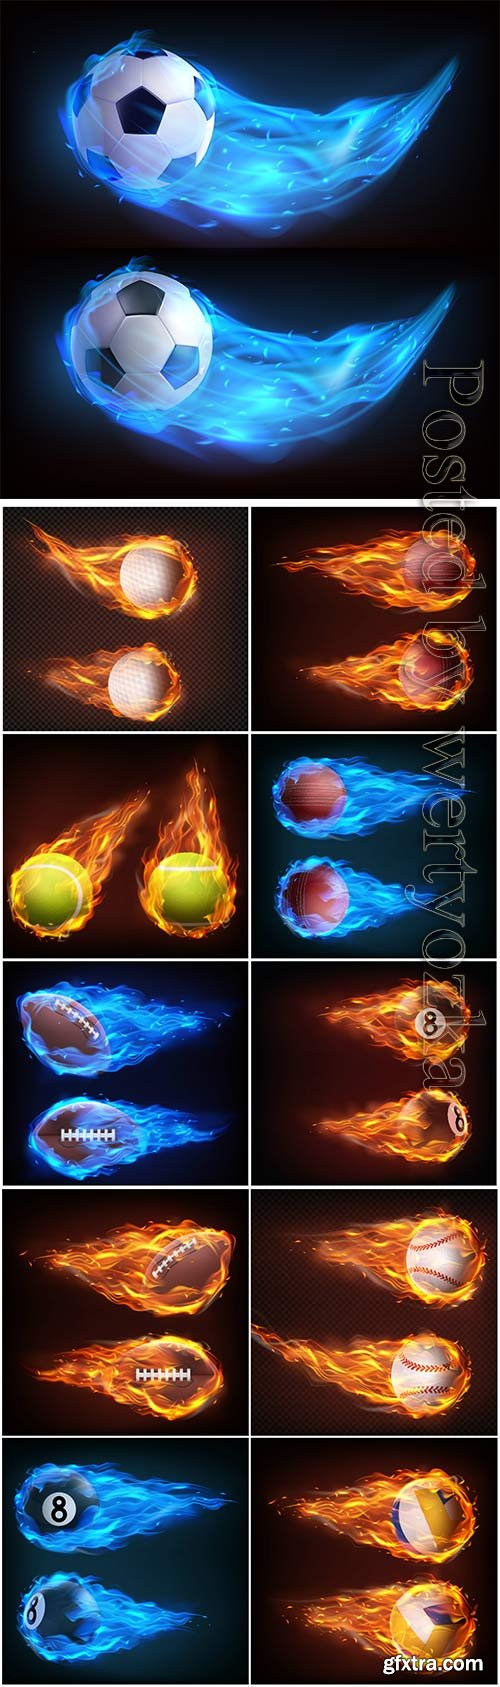 Balls flying in fire realistic vector